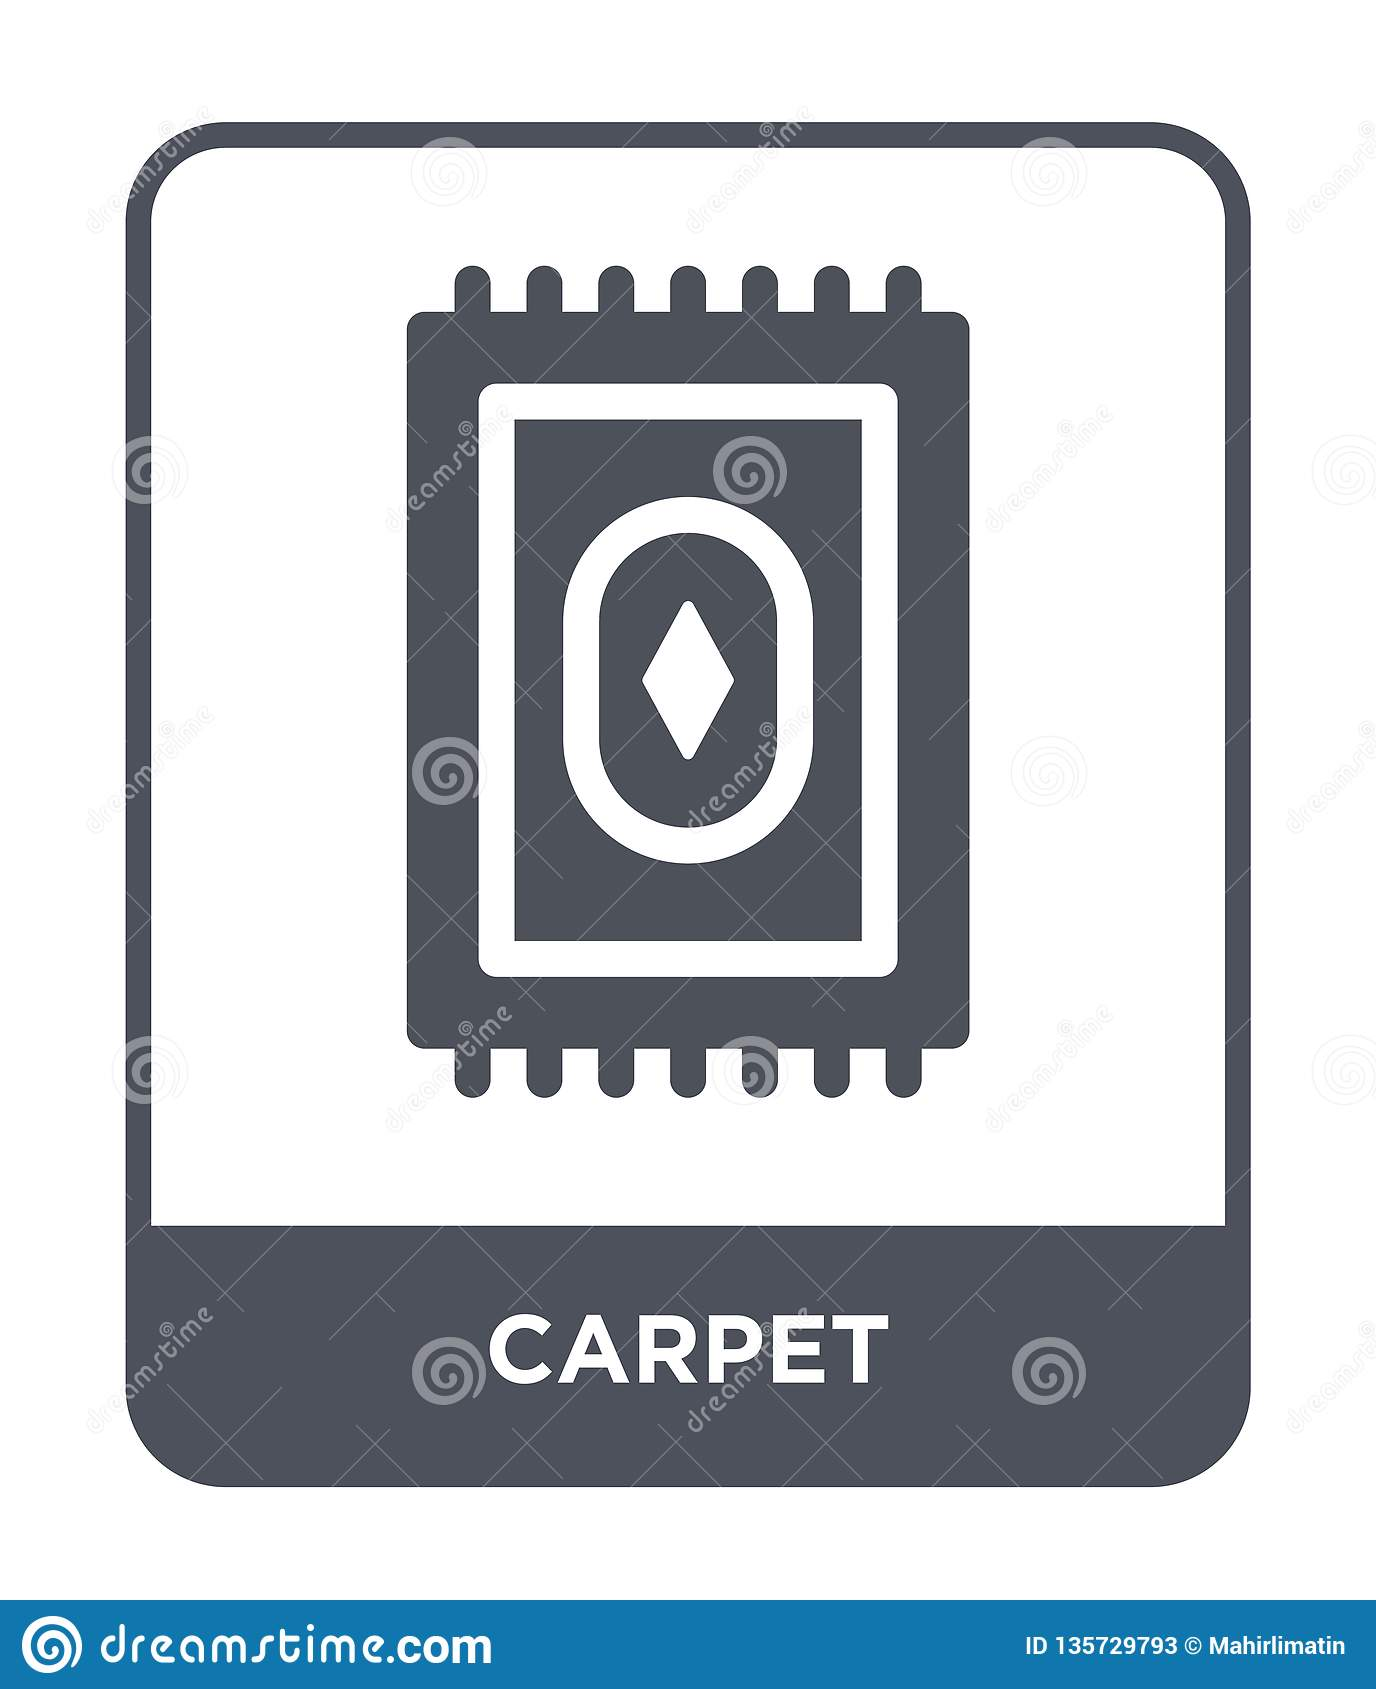 carpet icon in trendy design style. carpet icon isolated on white background. carpet vector icon simple and modern flat symbol for